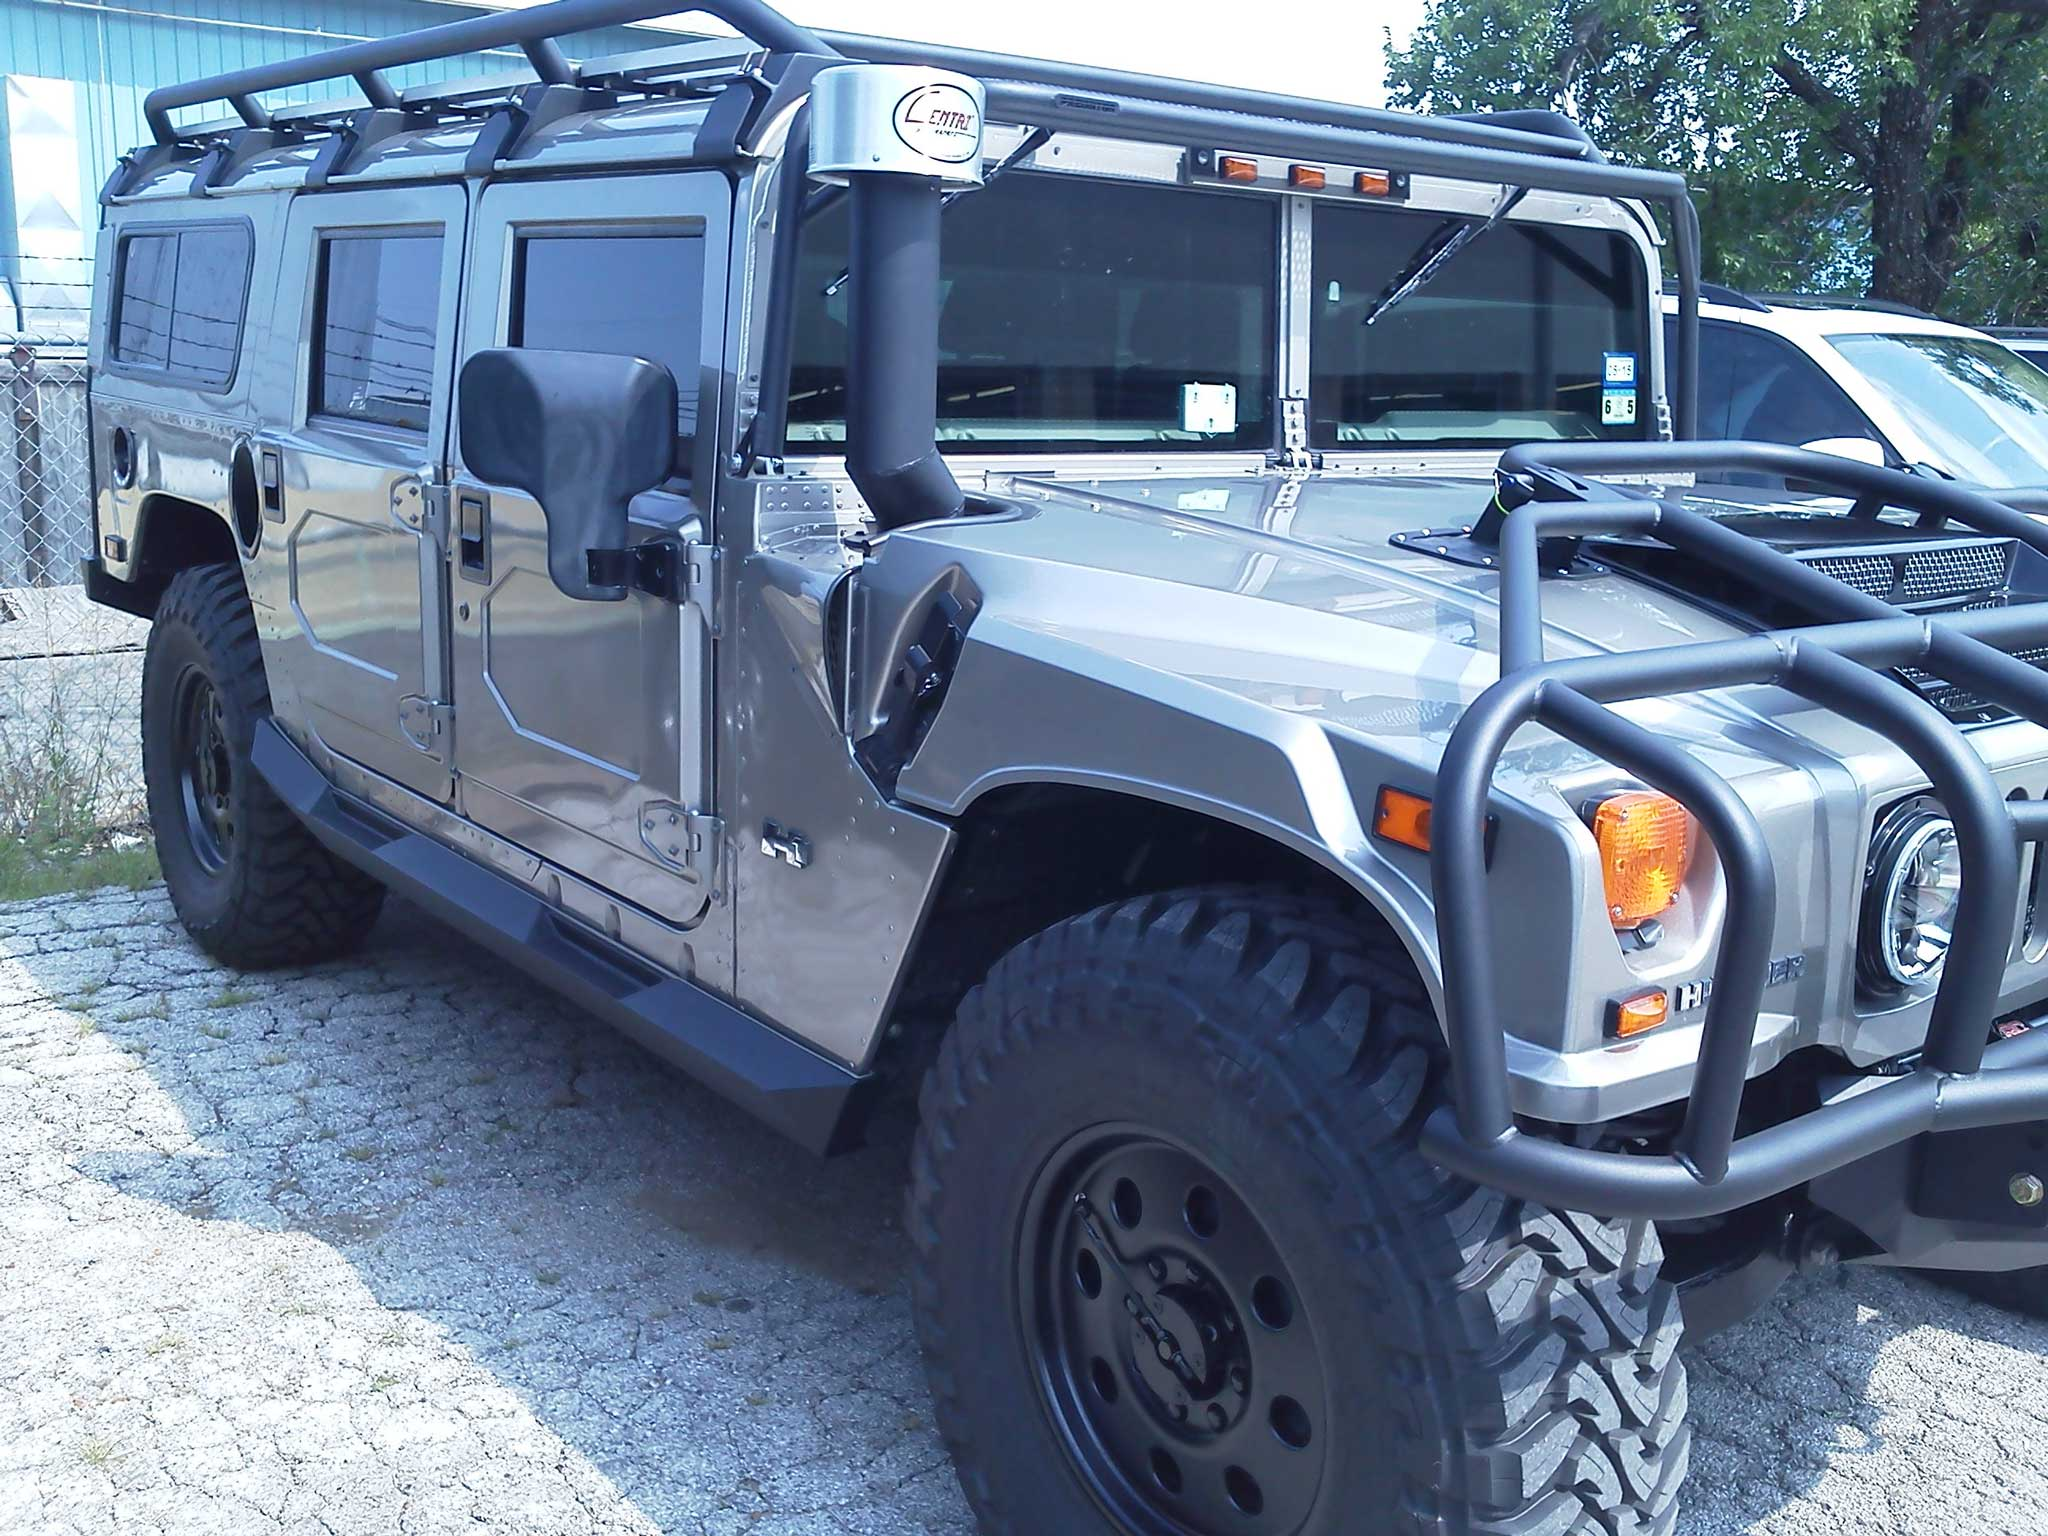 GT Cepek Hummer Tires froad and road